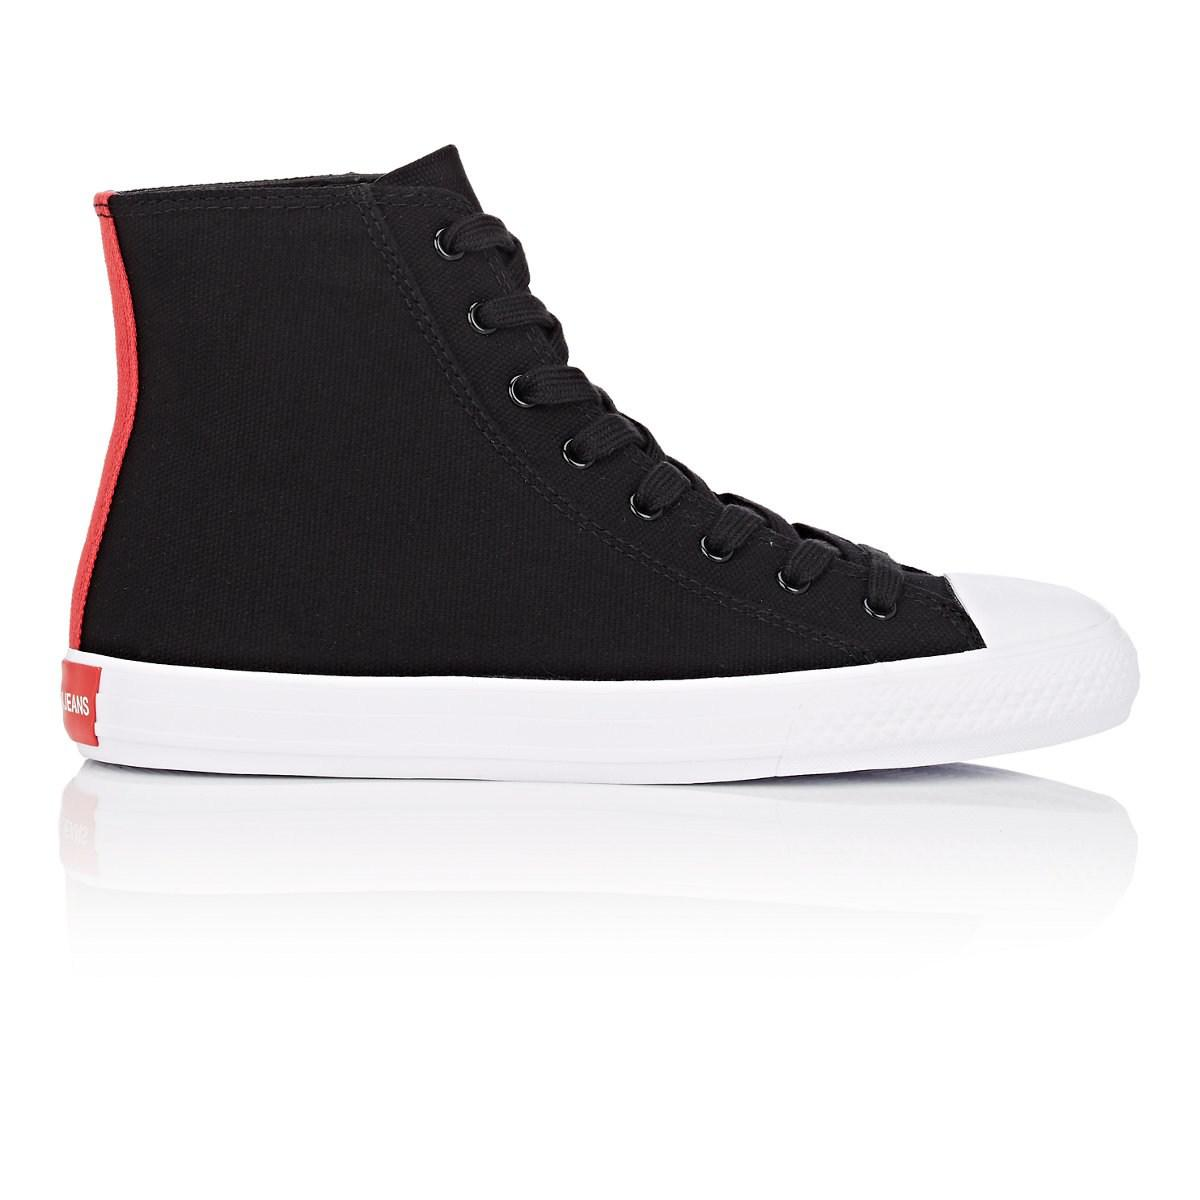 Calvin Klein Canvas Canter High-Top Sneakers Sale Free Shipping Discount Clearance Store Discount Cheap Online 6UfT1m0